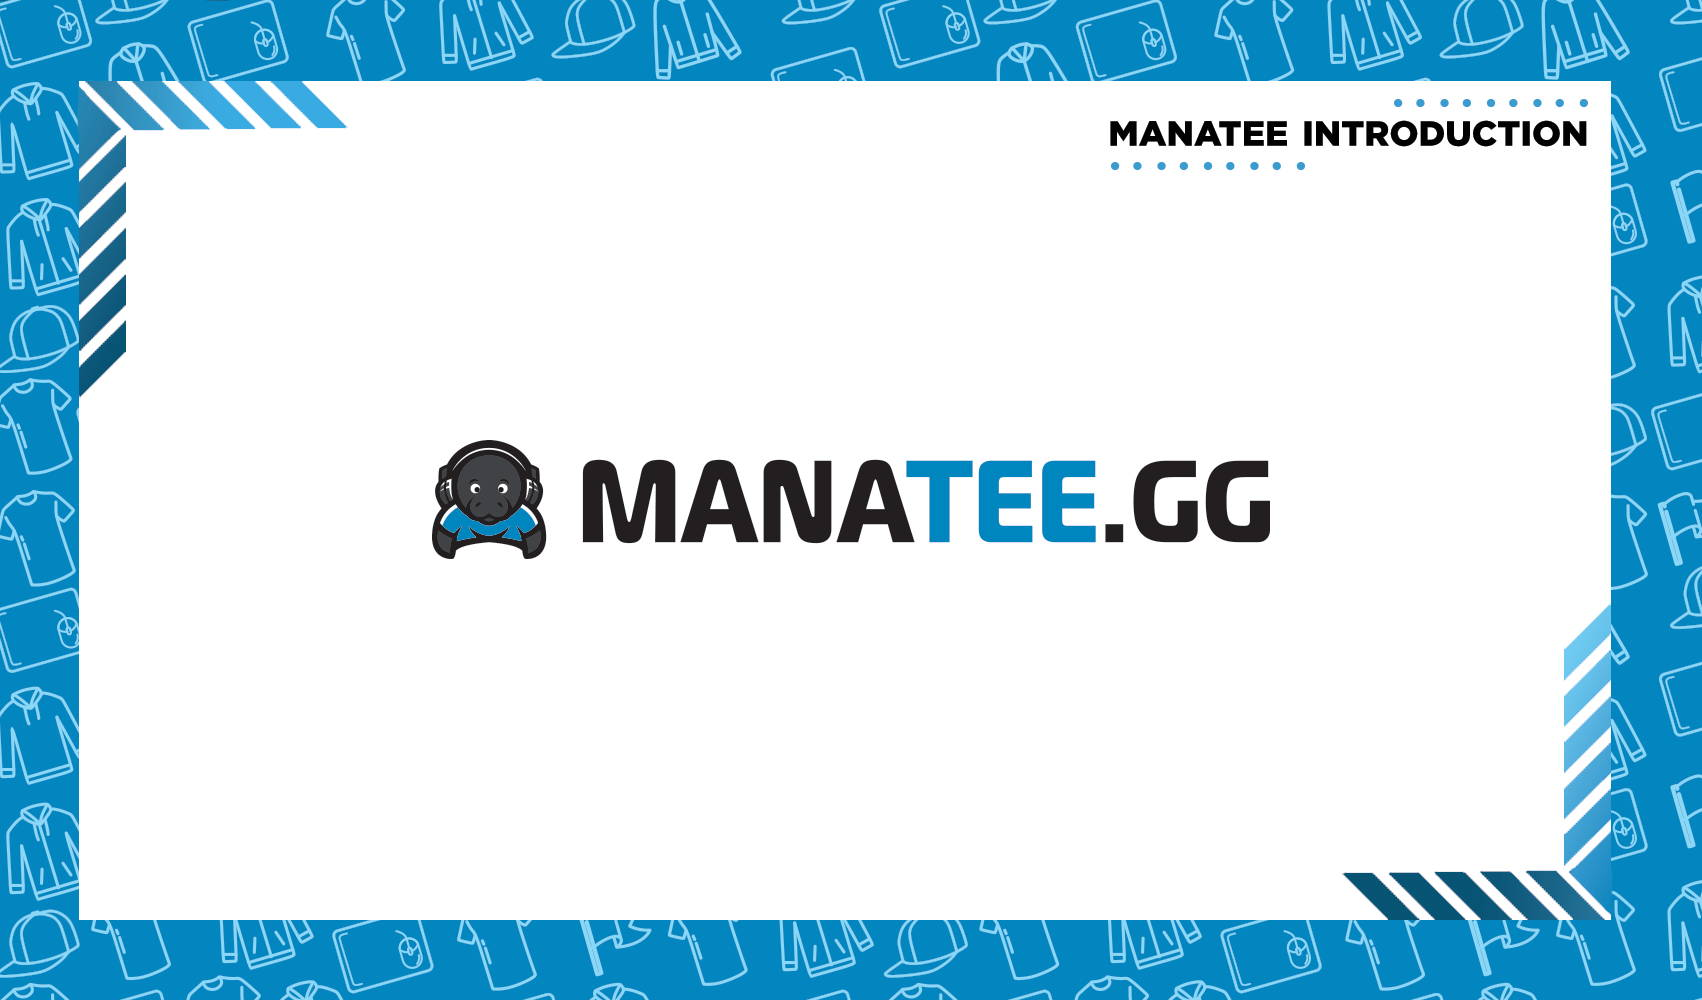 Manatee.GG Introduction